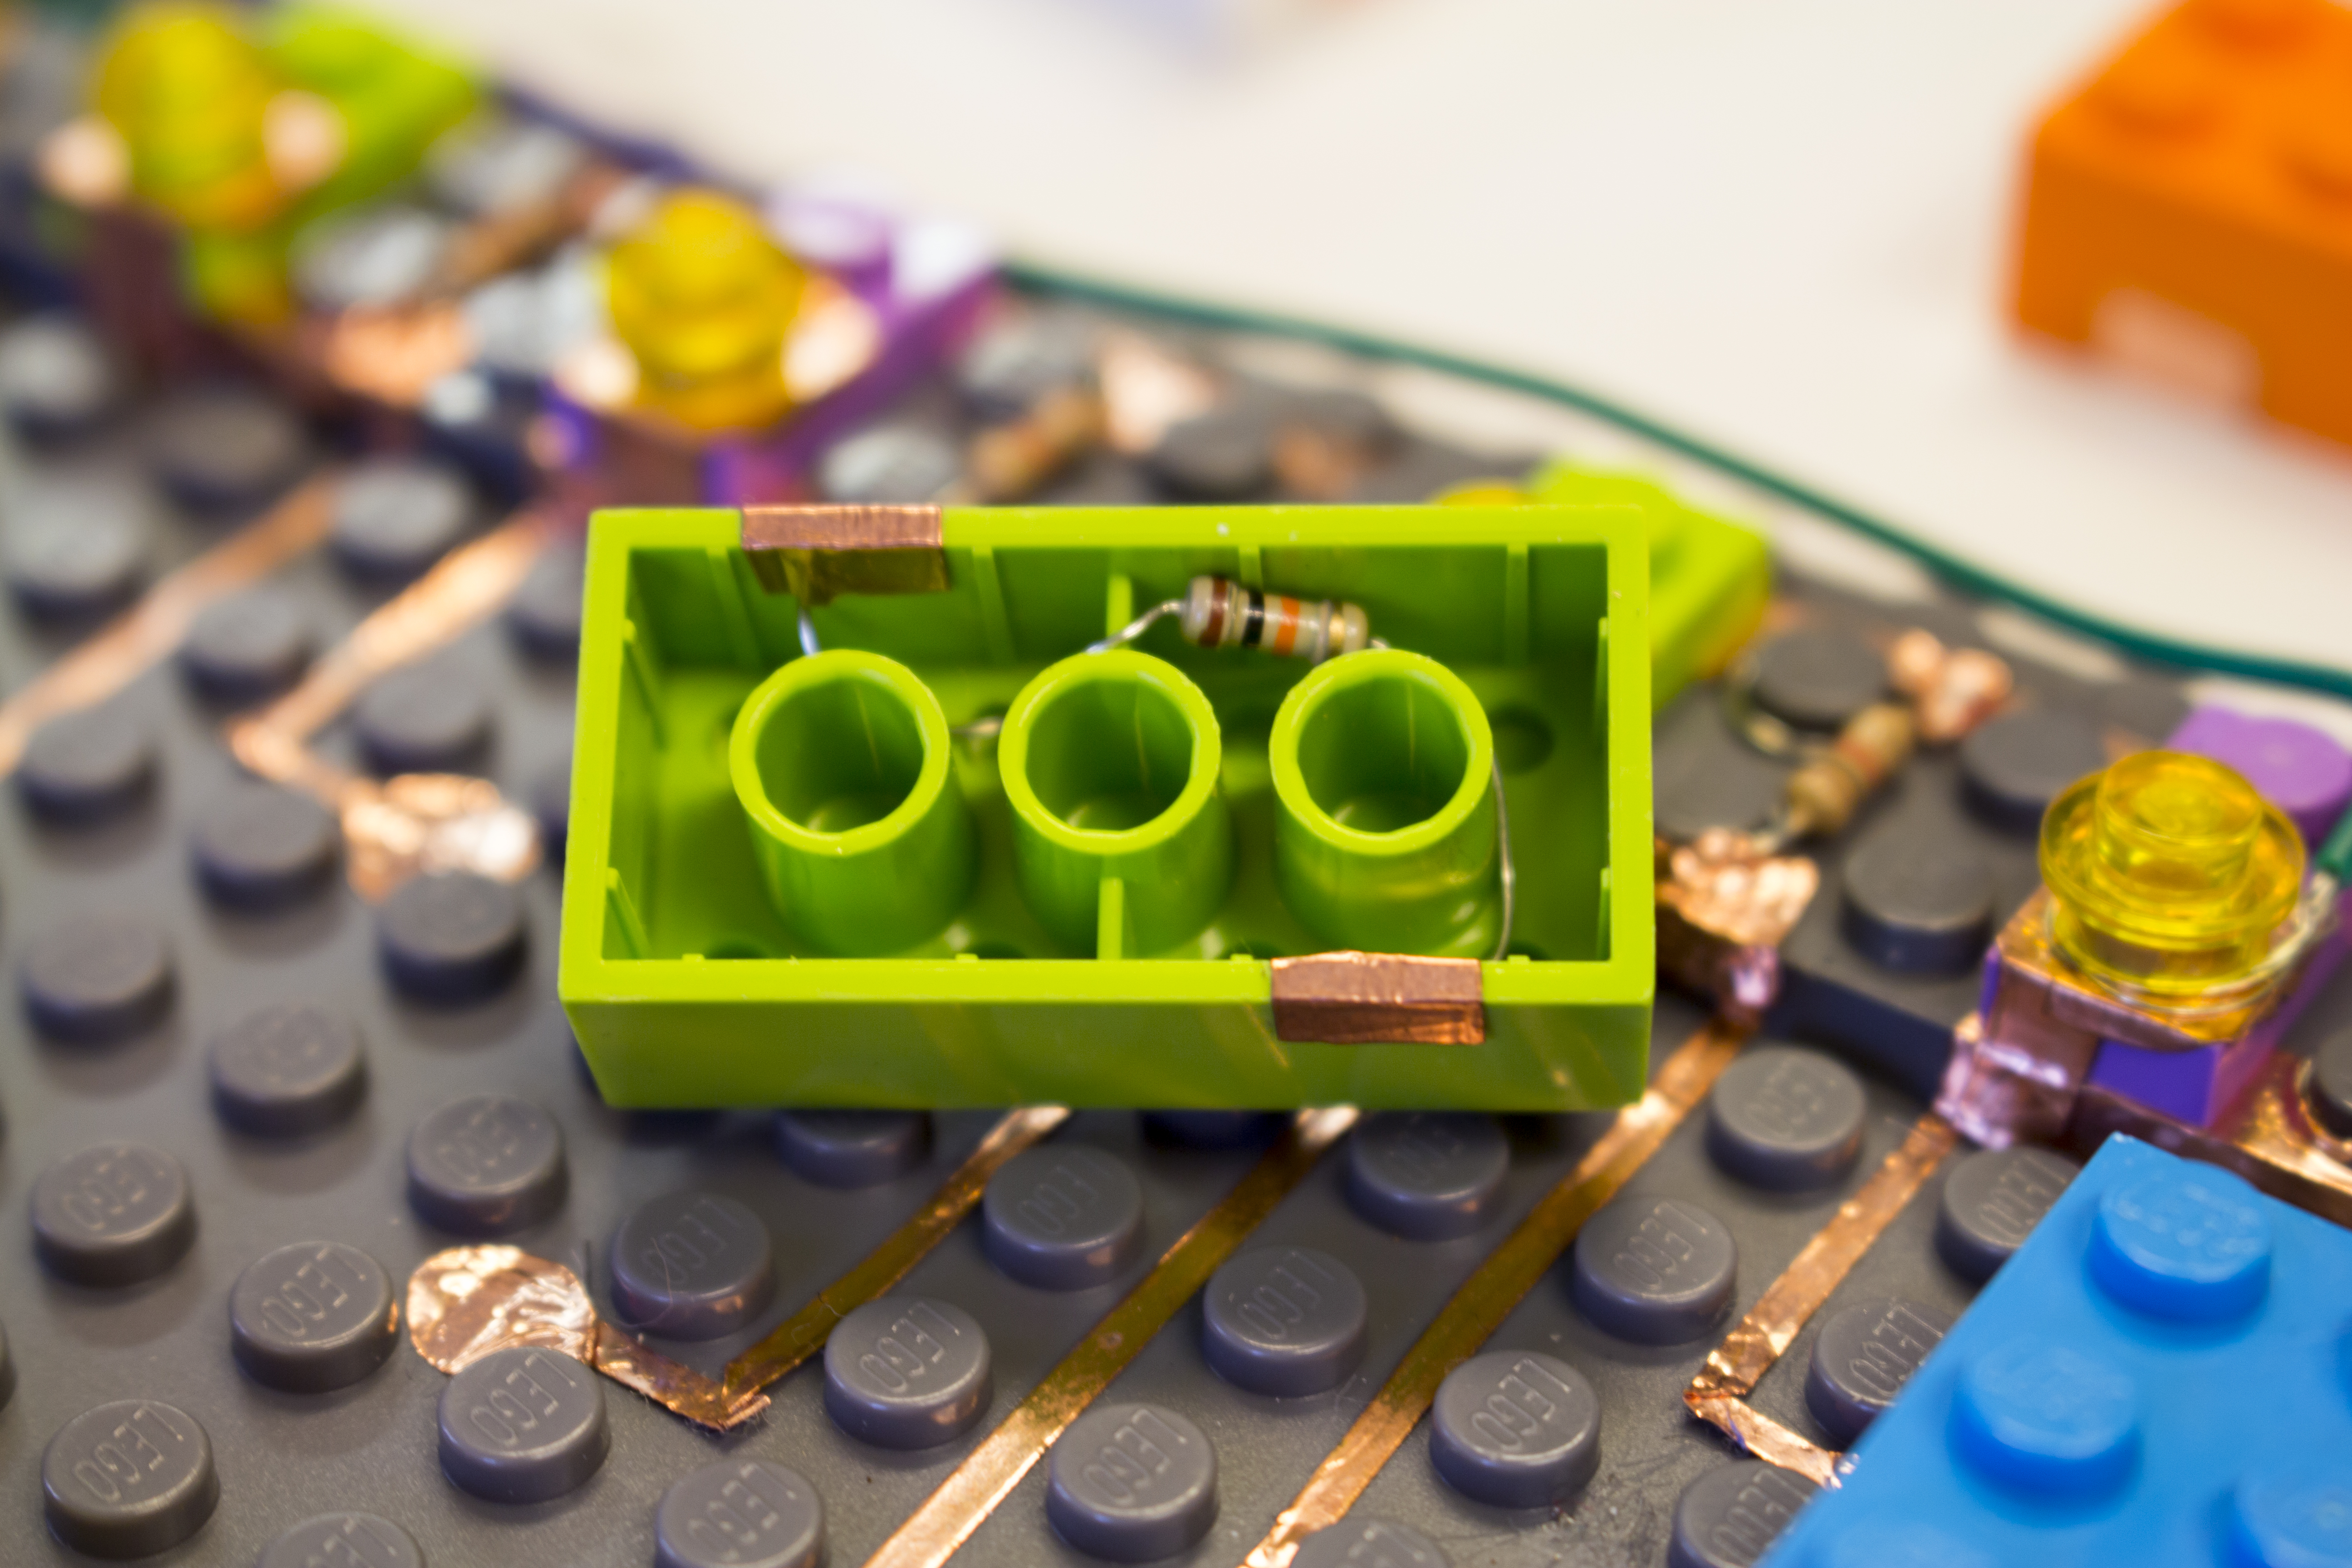 lego circuits \u2013 alemolinai placed resistors inside of the bricks, and, with conductive tape, made the connections i used a different colored brick for each resistor value,